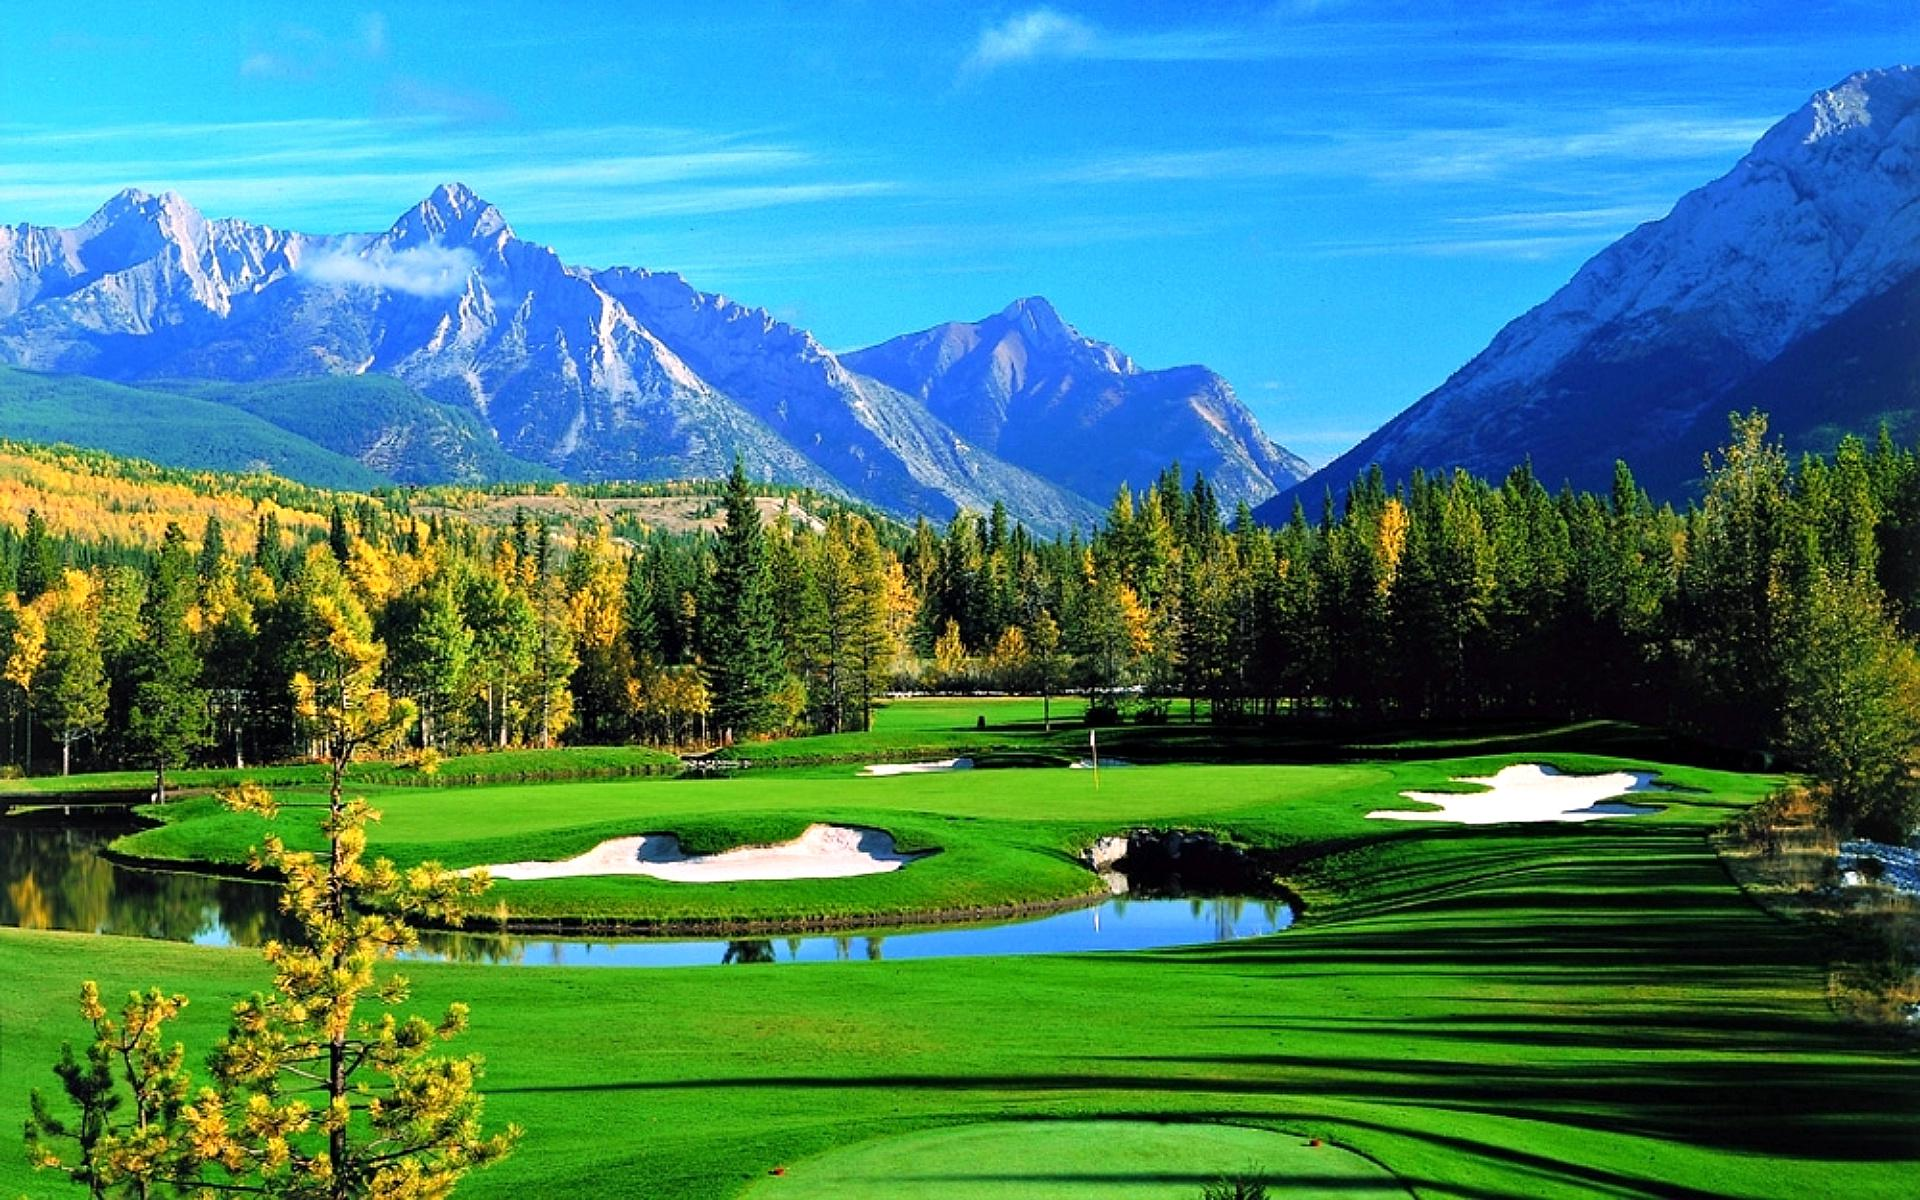 Kananaskis golf course HQ WALLPAPER - (#156459)